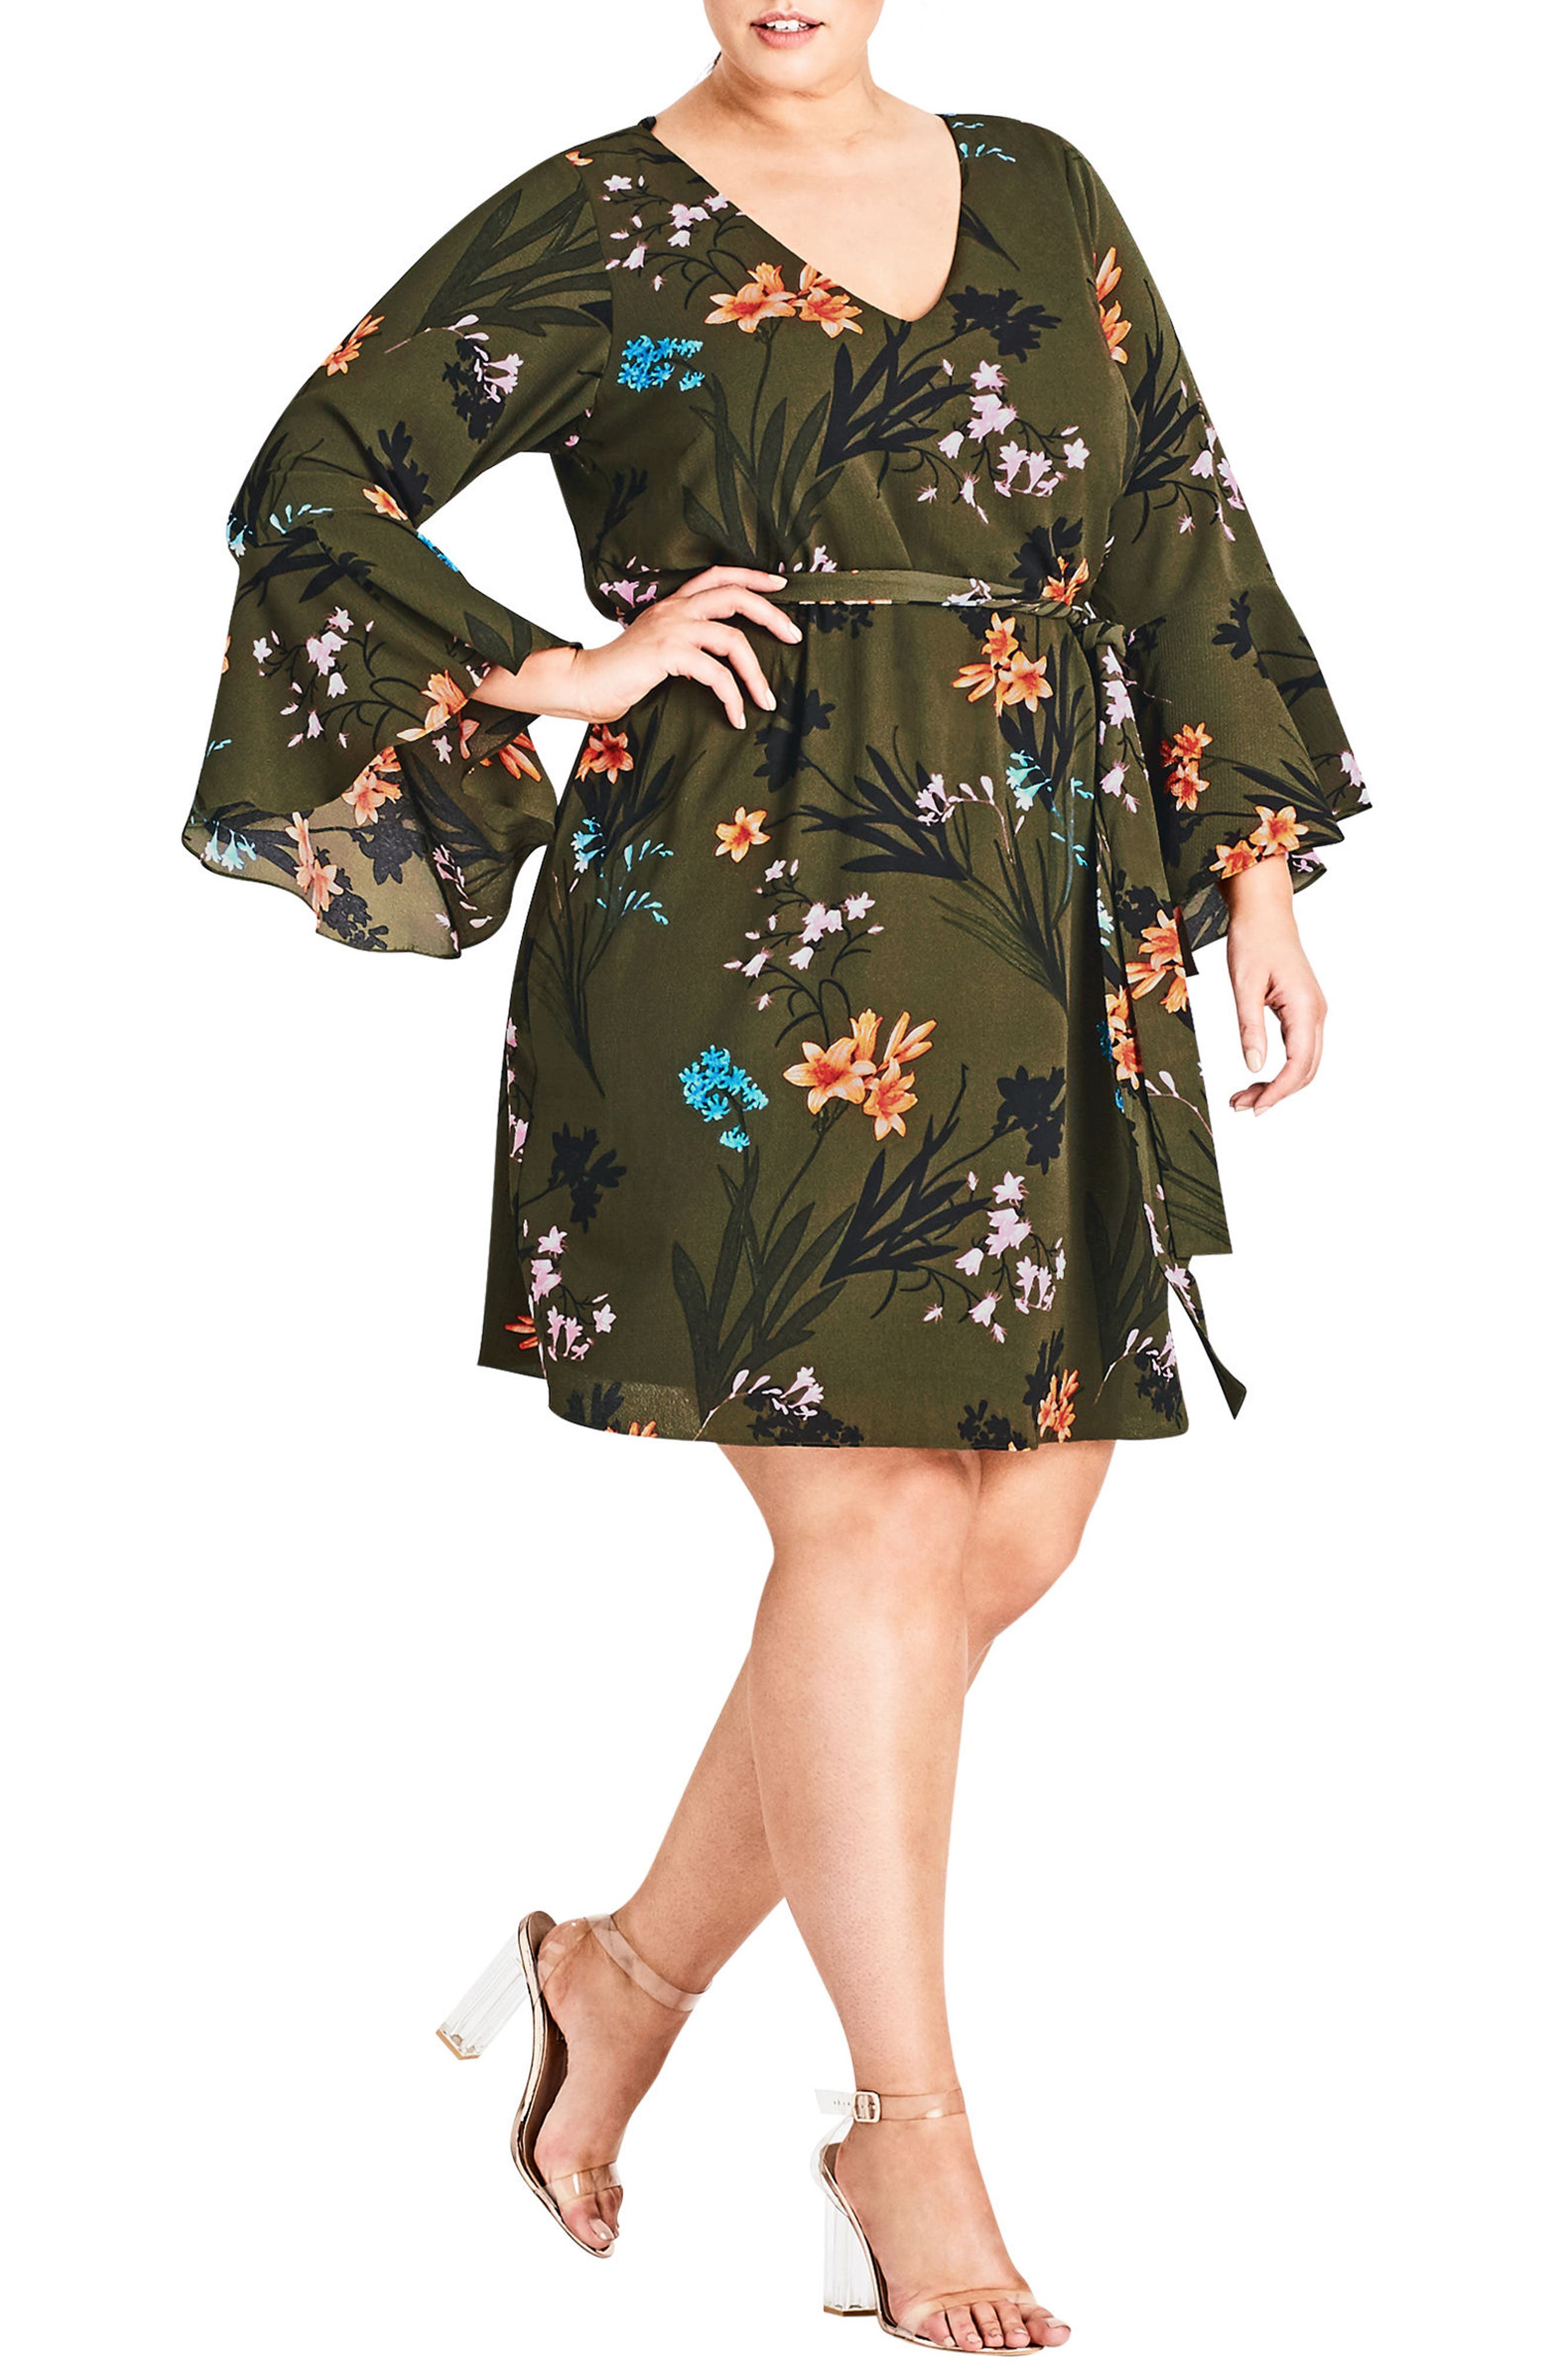 CITY CHIC Jungle Floral Bell Sleeve Dress, Main, color, 309